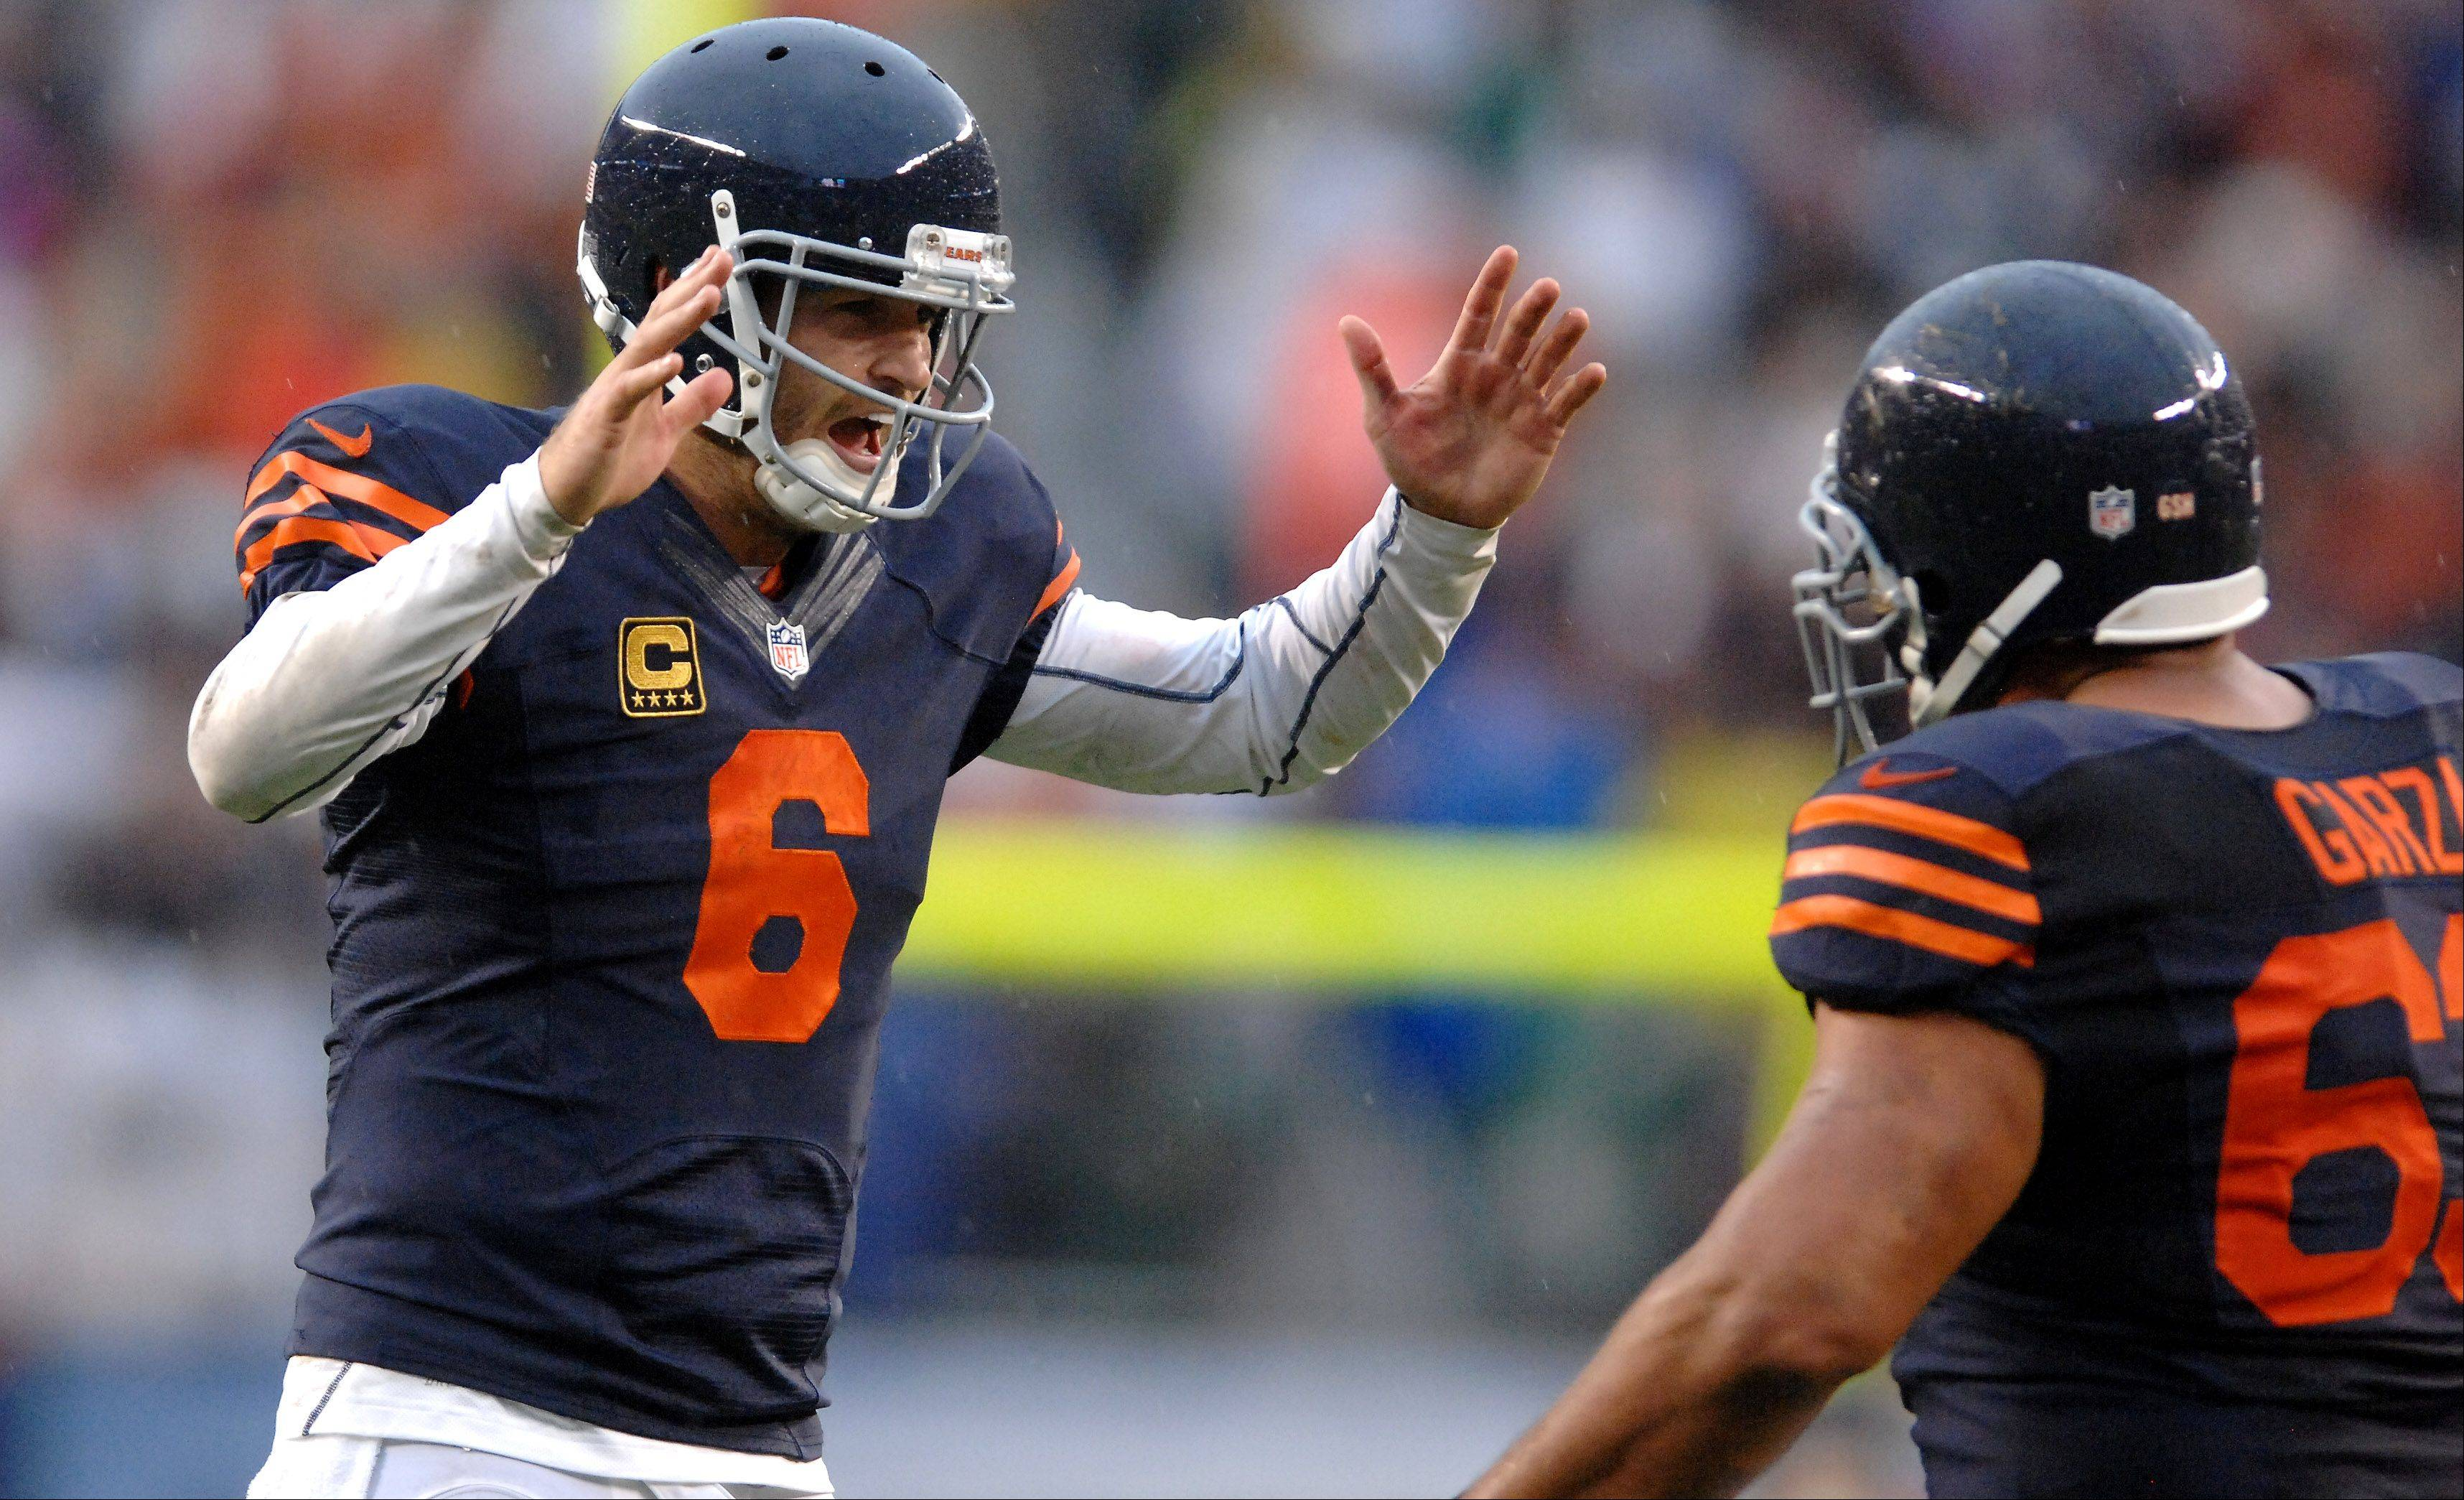 Bears quarterback Jay Cutler (6) celebrates the game-winning touchdown with center Roberto Garza (63) on Sunday at Soldier Field in Chicago.